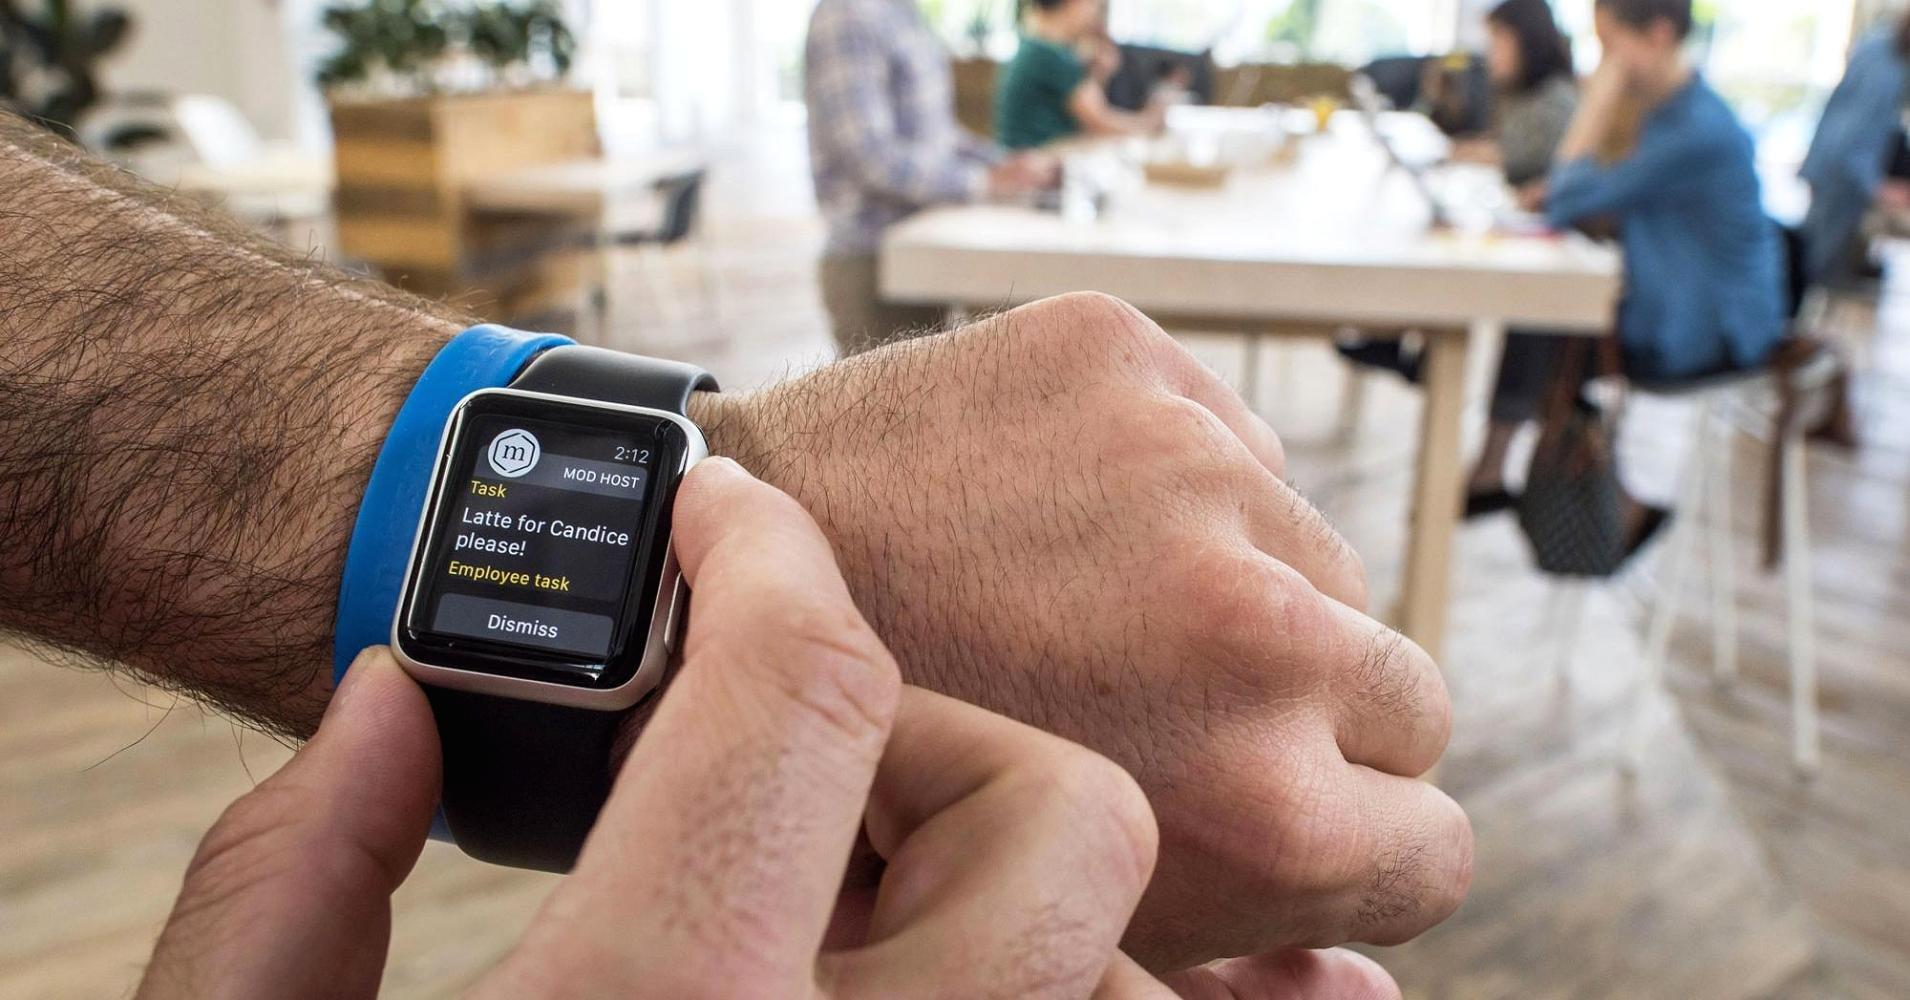 The new Apple Watch will still be tethered to the iPhone ...